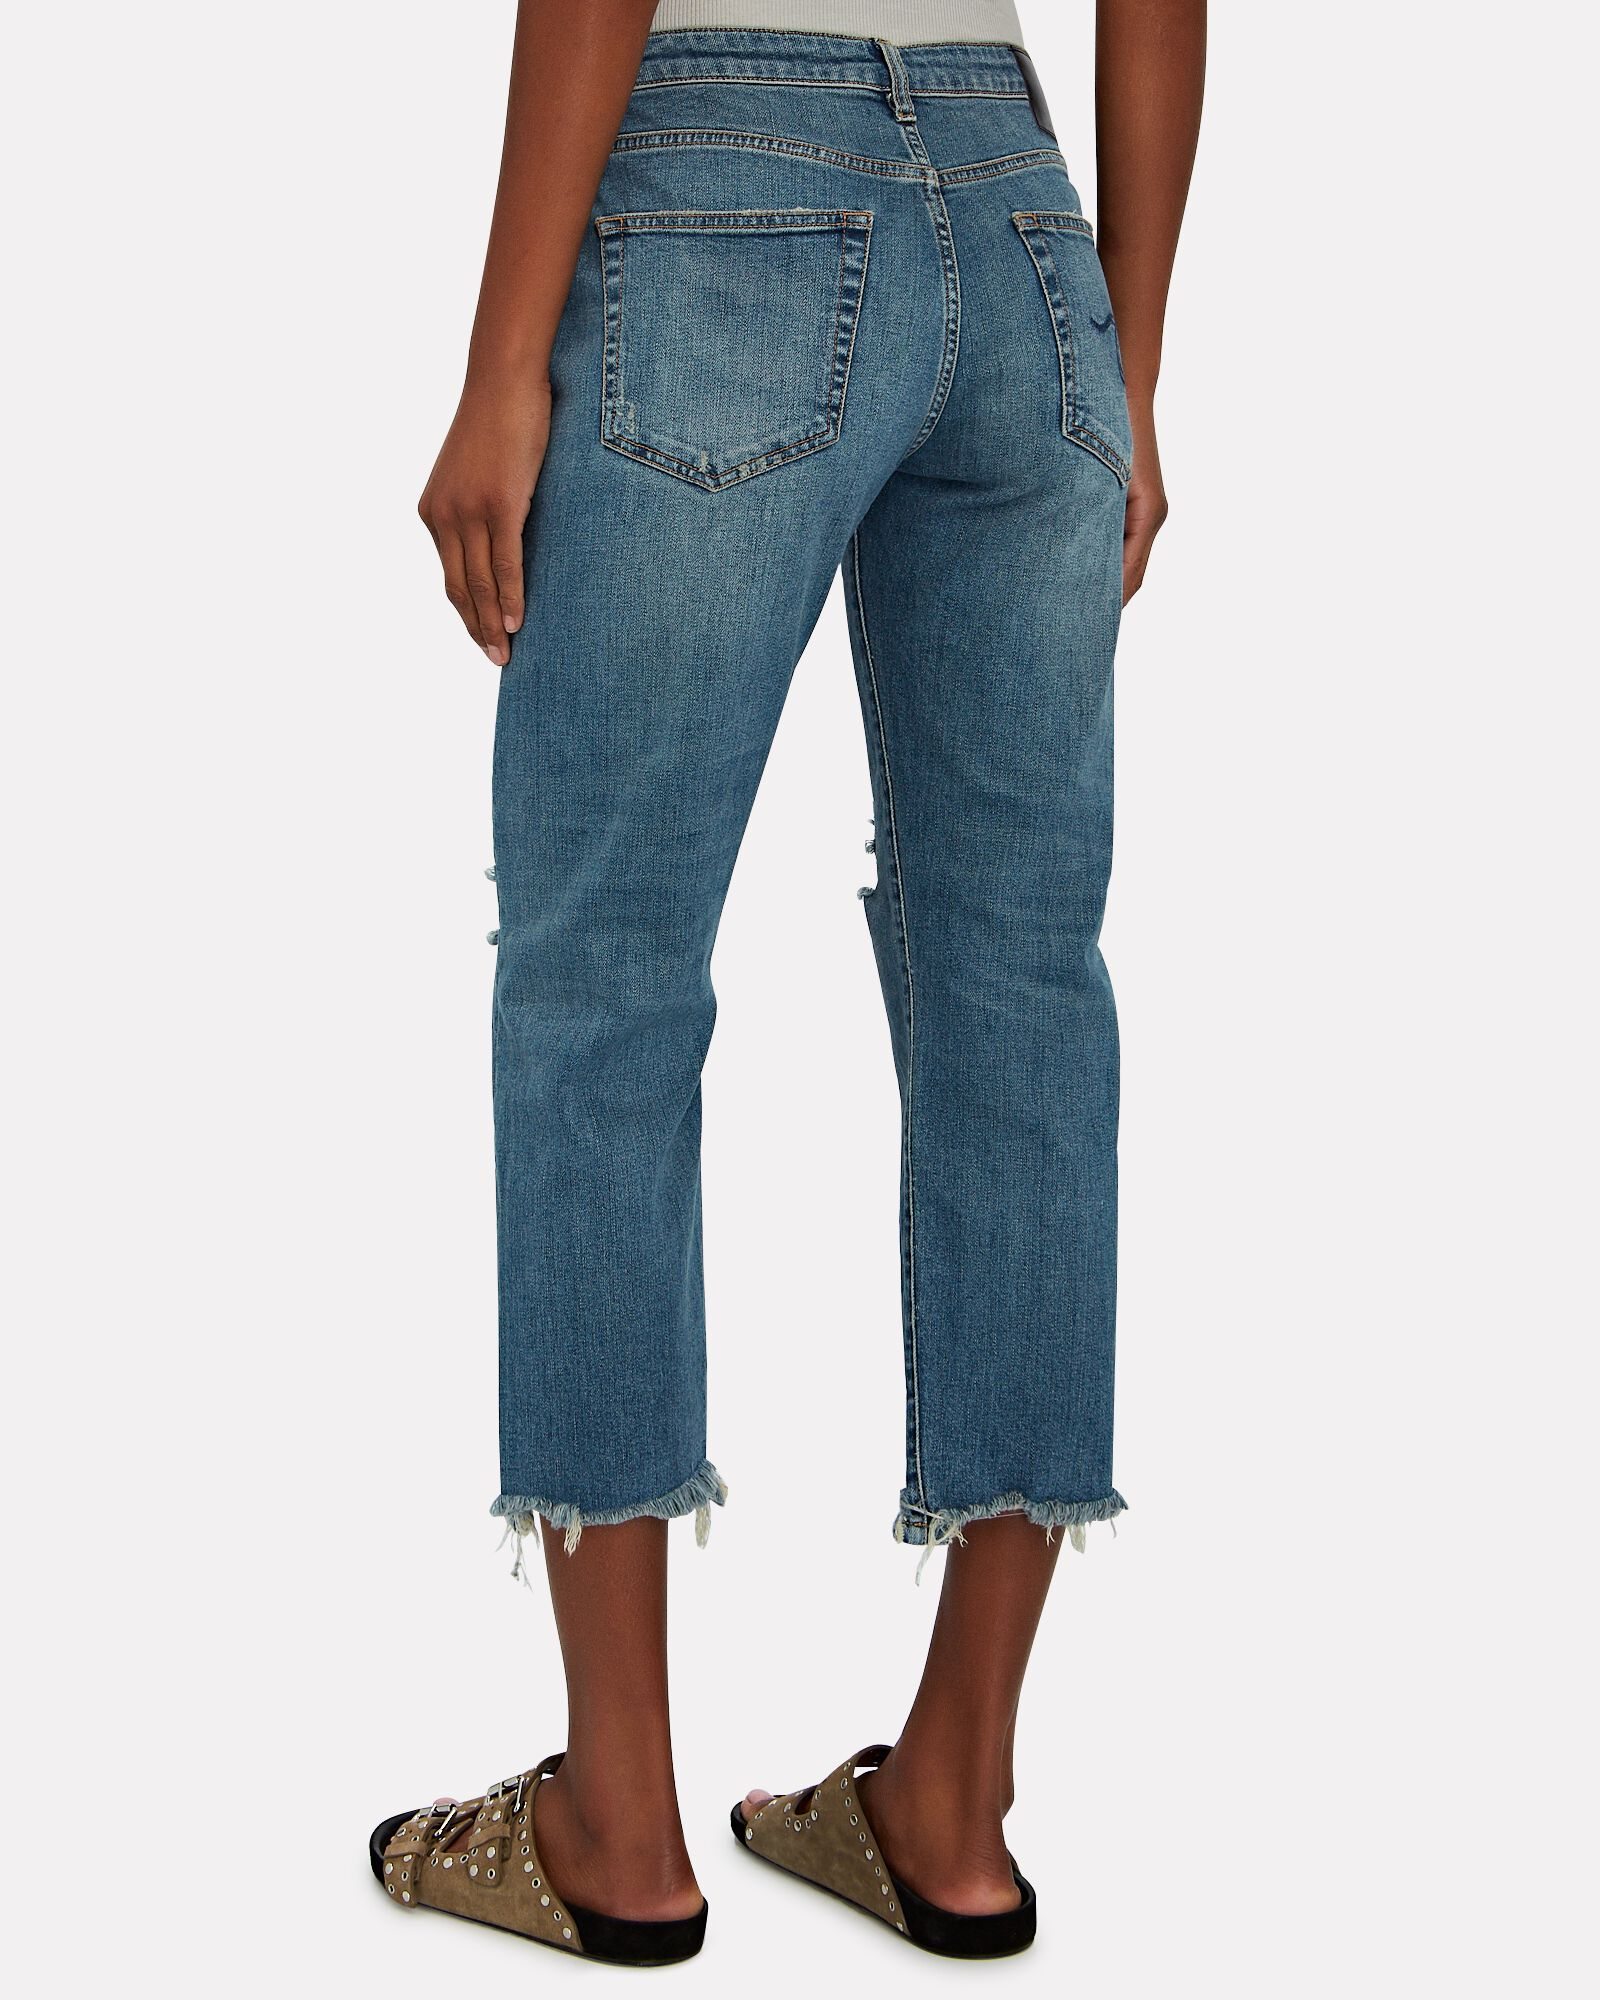 Boy Straight-Leg Crop Jeans, BAYLIS WITH RIPS, hi-res